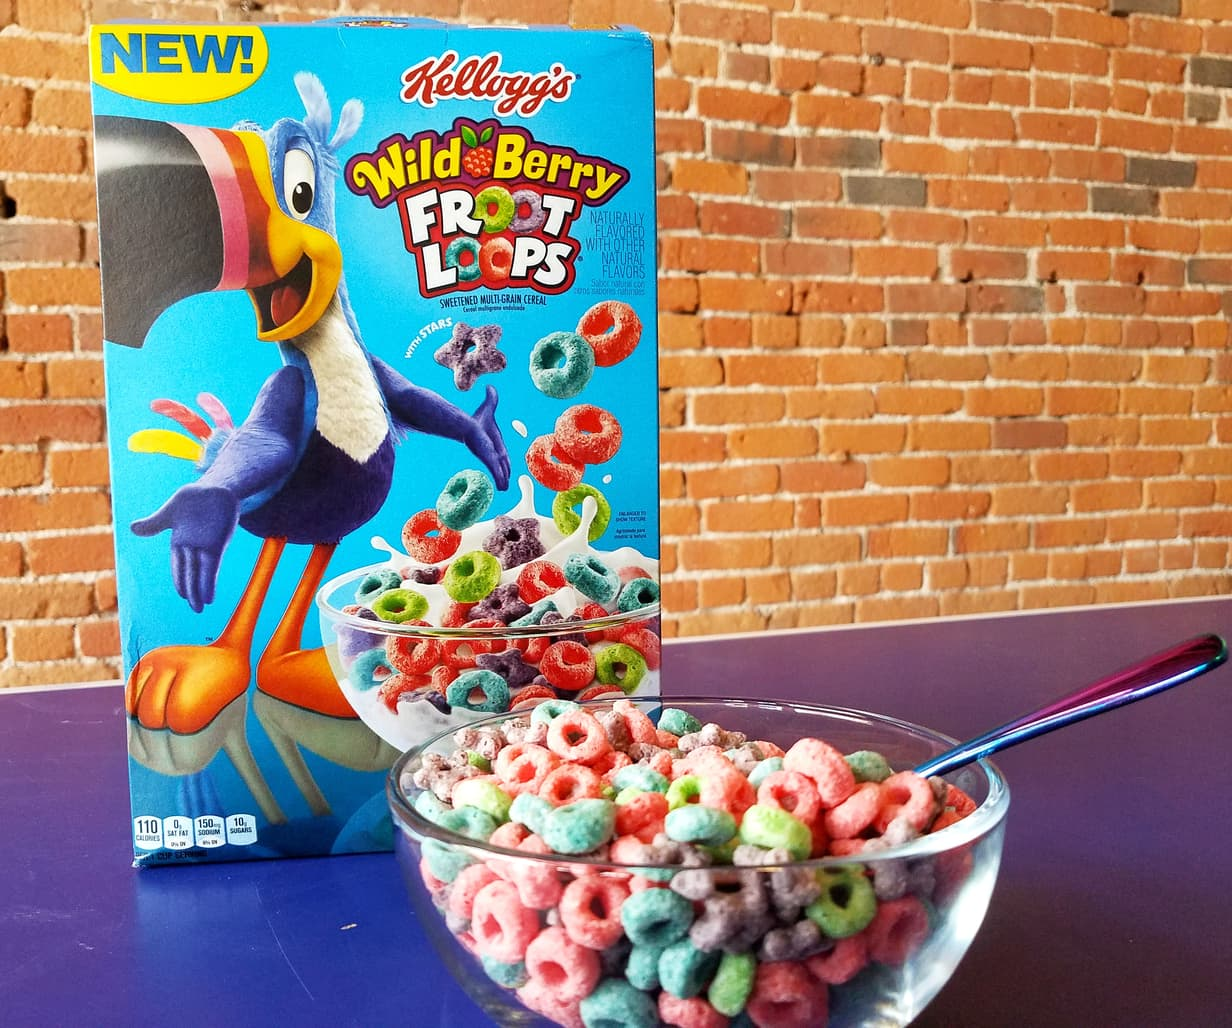 for the first time in 10 years froot loops releases a new flavor